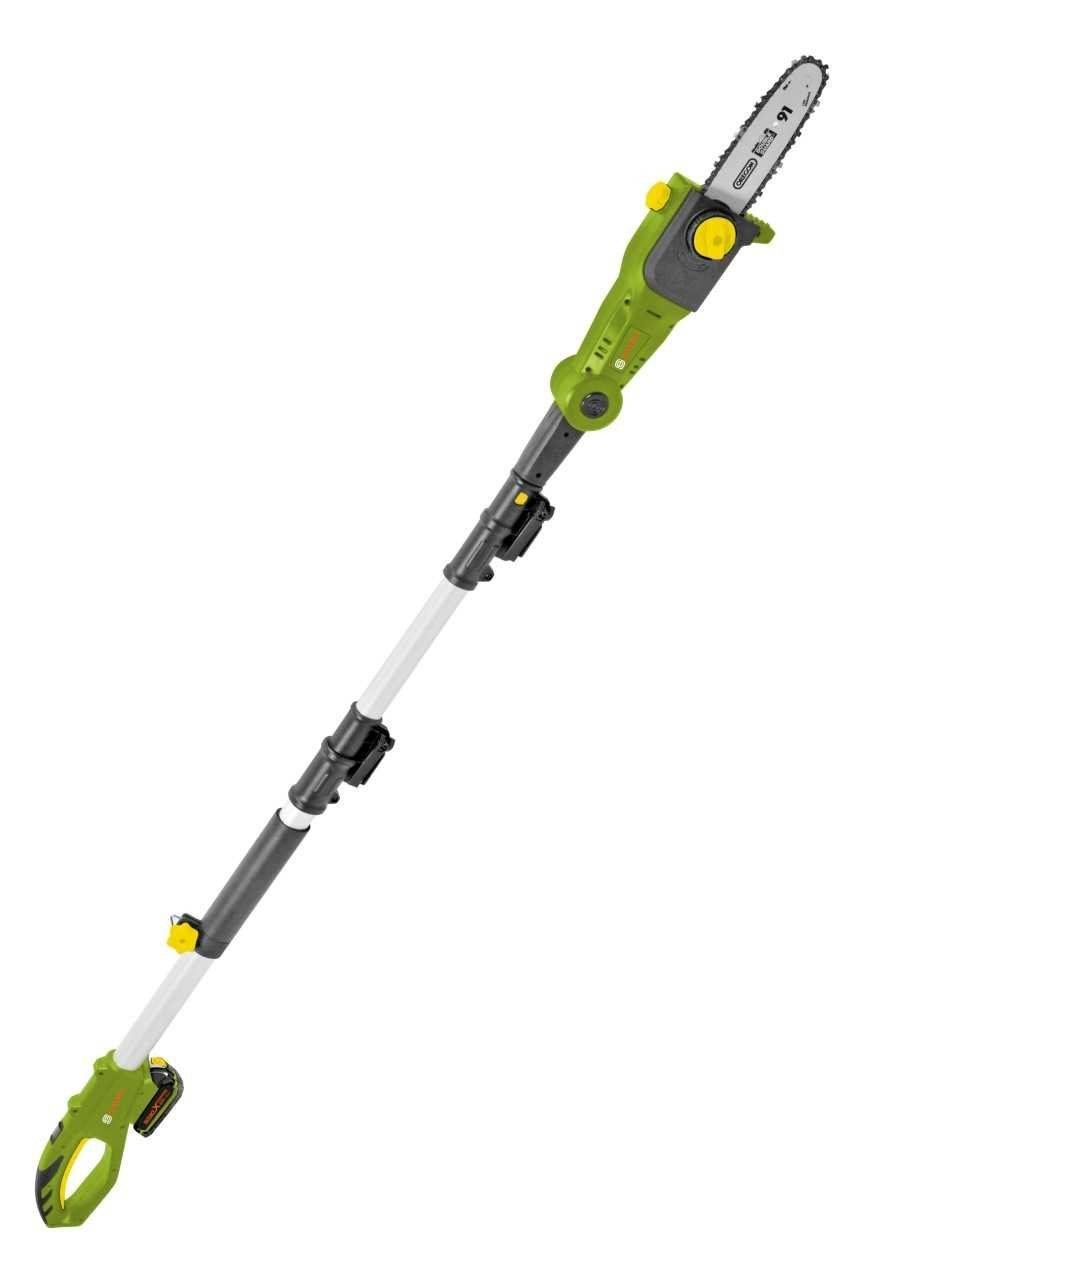 SmartEco 20V Lithium Ion Cordless 8-inch Telescoping Pole Saw with Automatic Chain Lubrication System (1x2.0Ah Battery & 1hr Fast Charger Included)